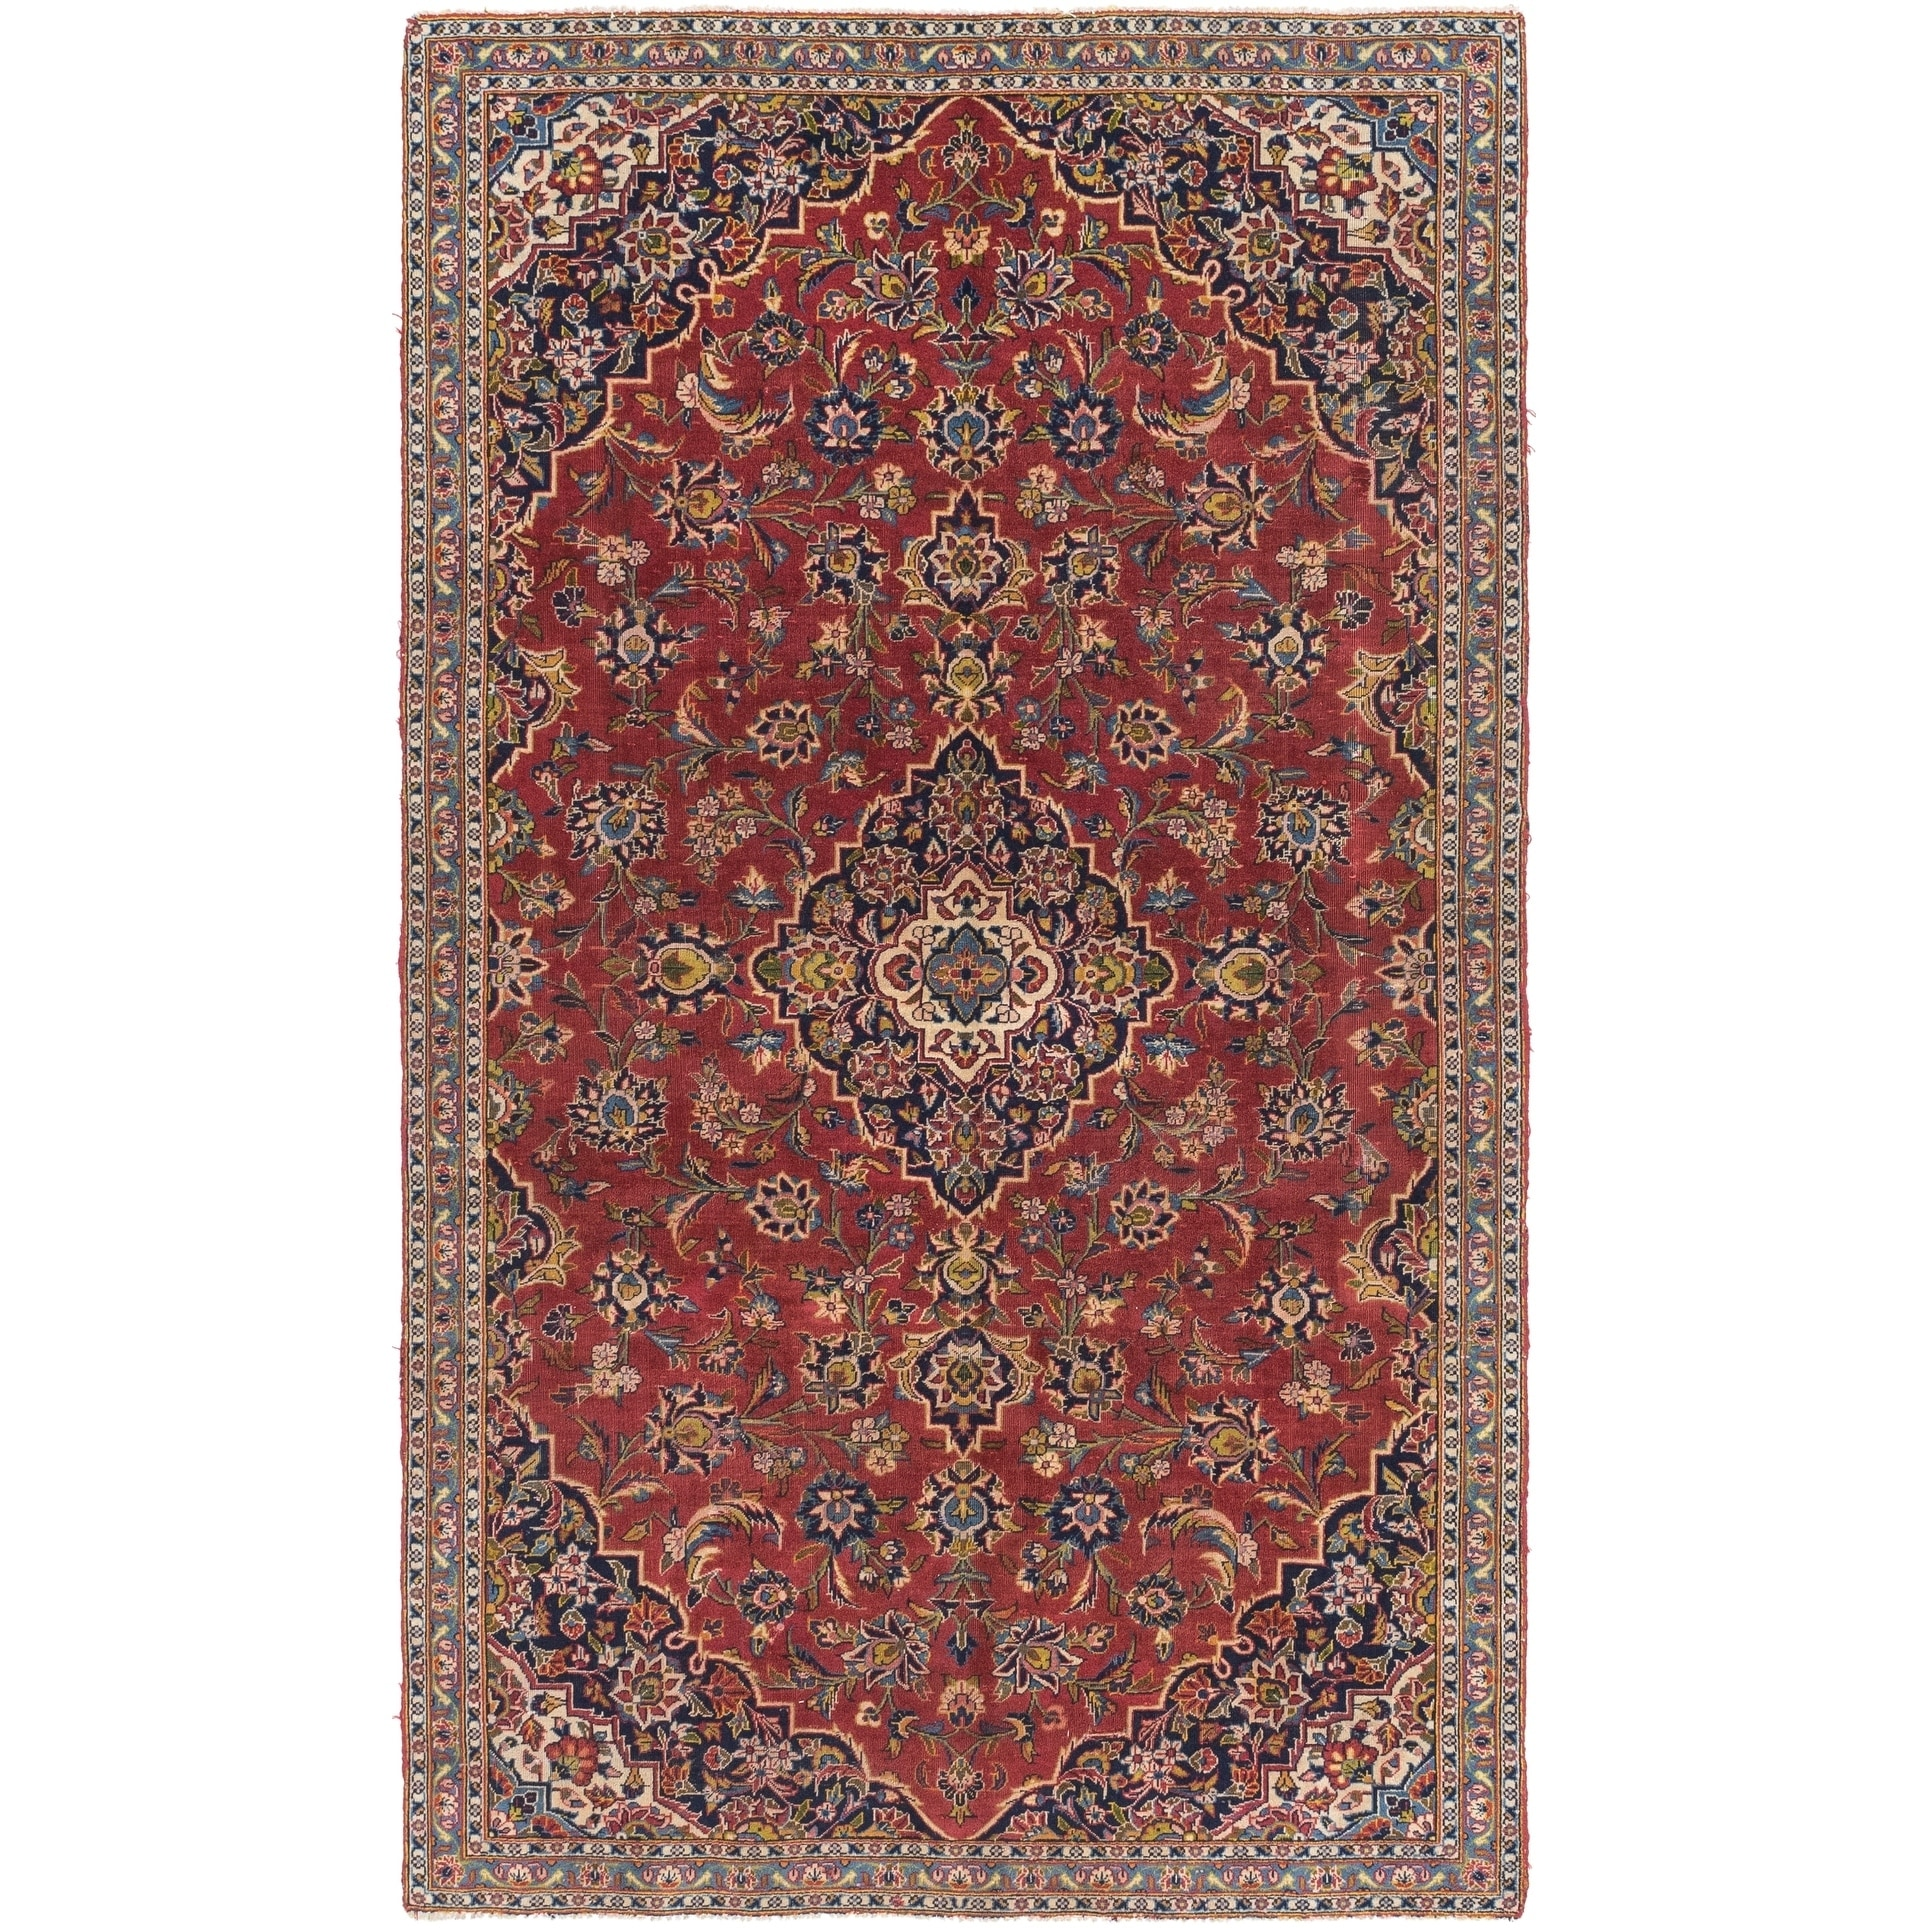 Hand Knotted Kashan Semi Antique Wool Area Rug - 5 7 x 9 5 (Red - 5 7 x 9 5)